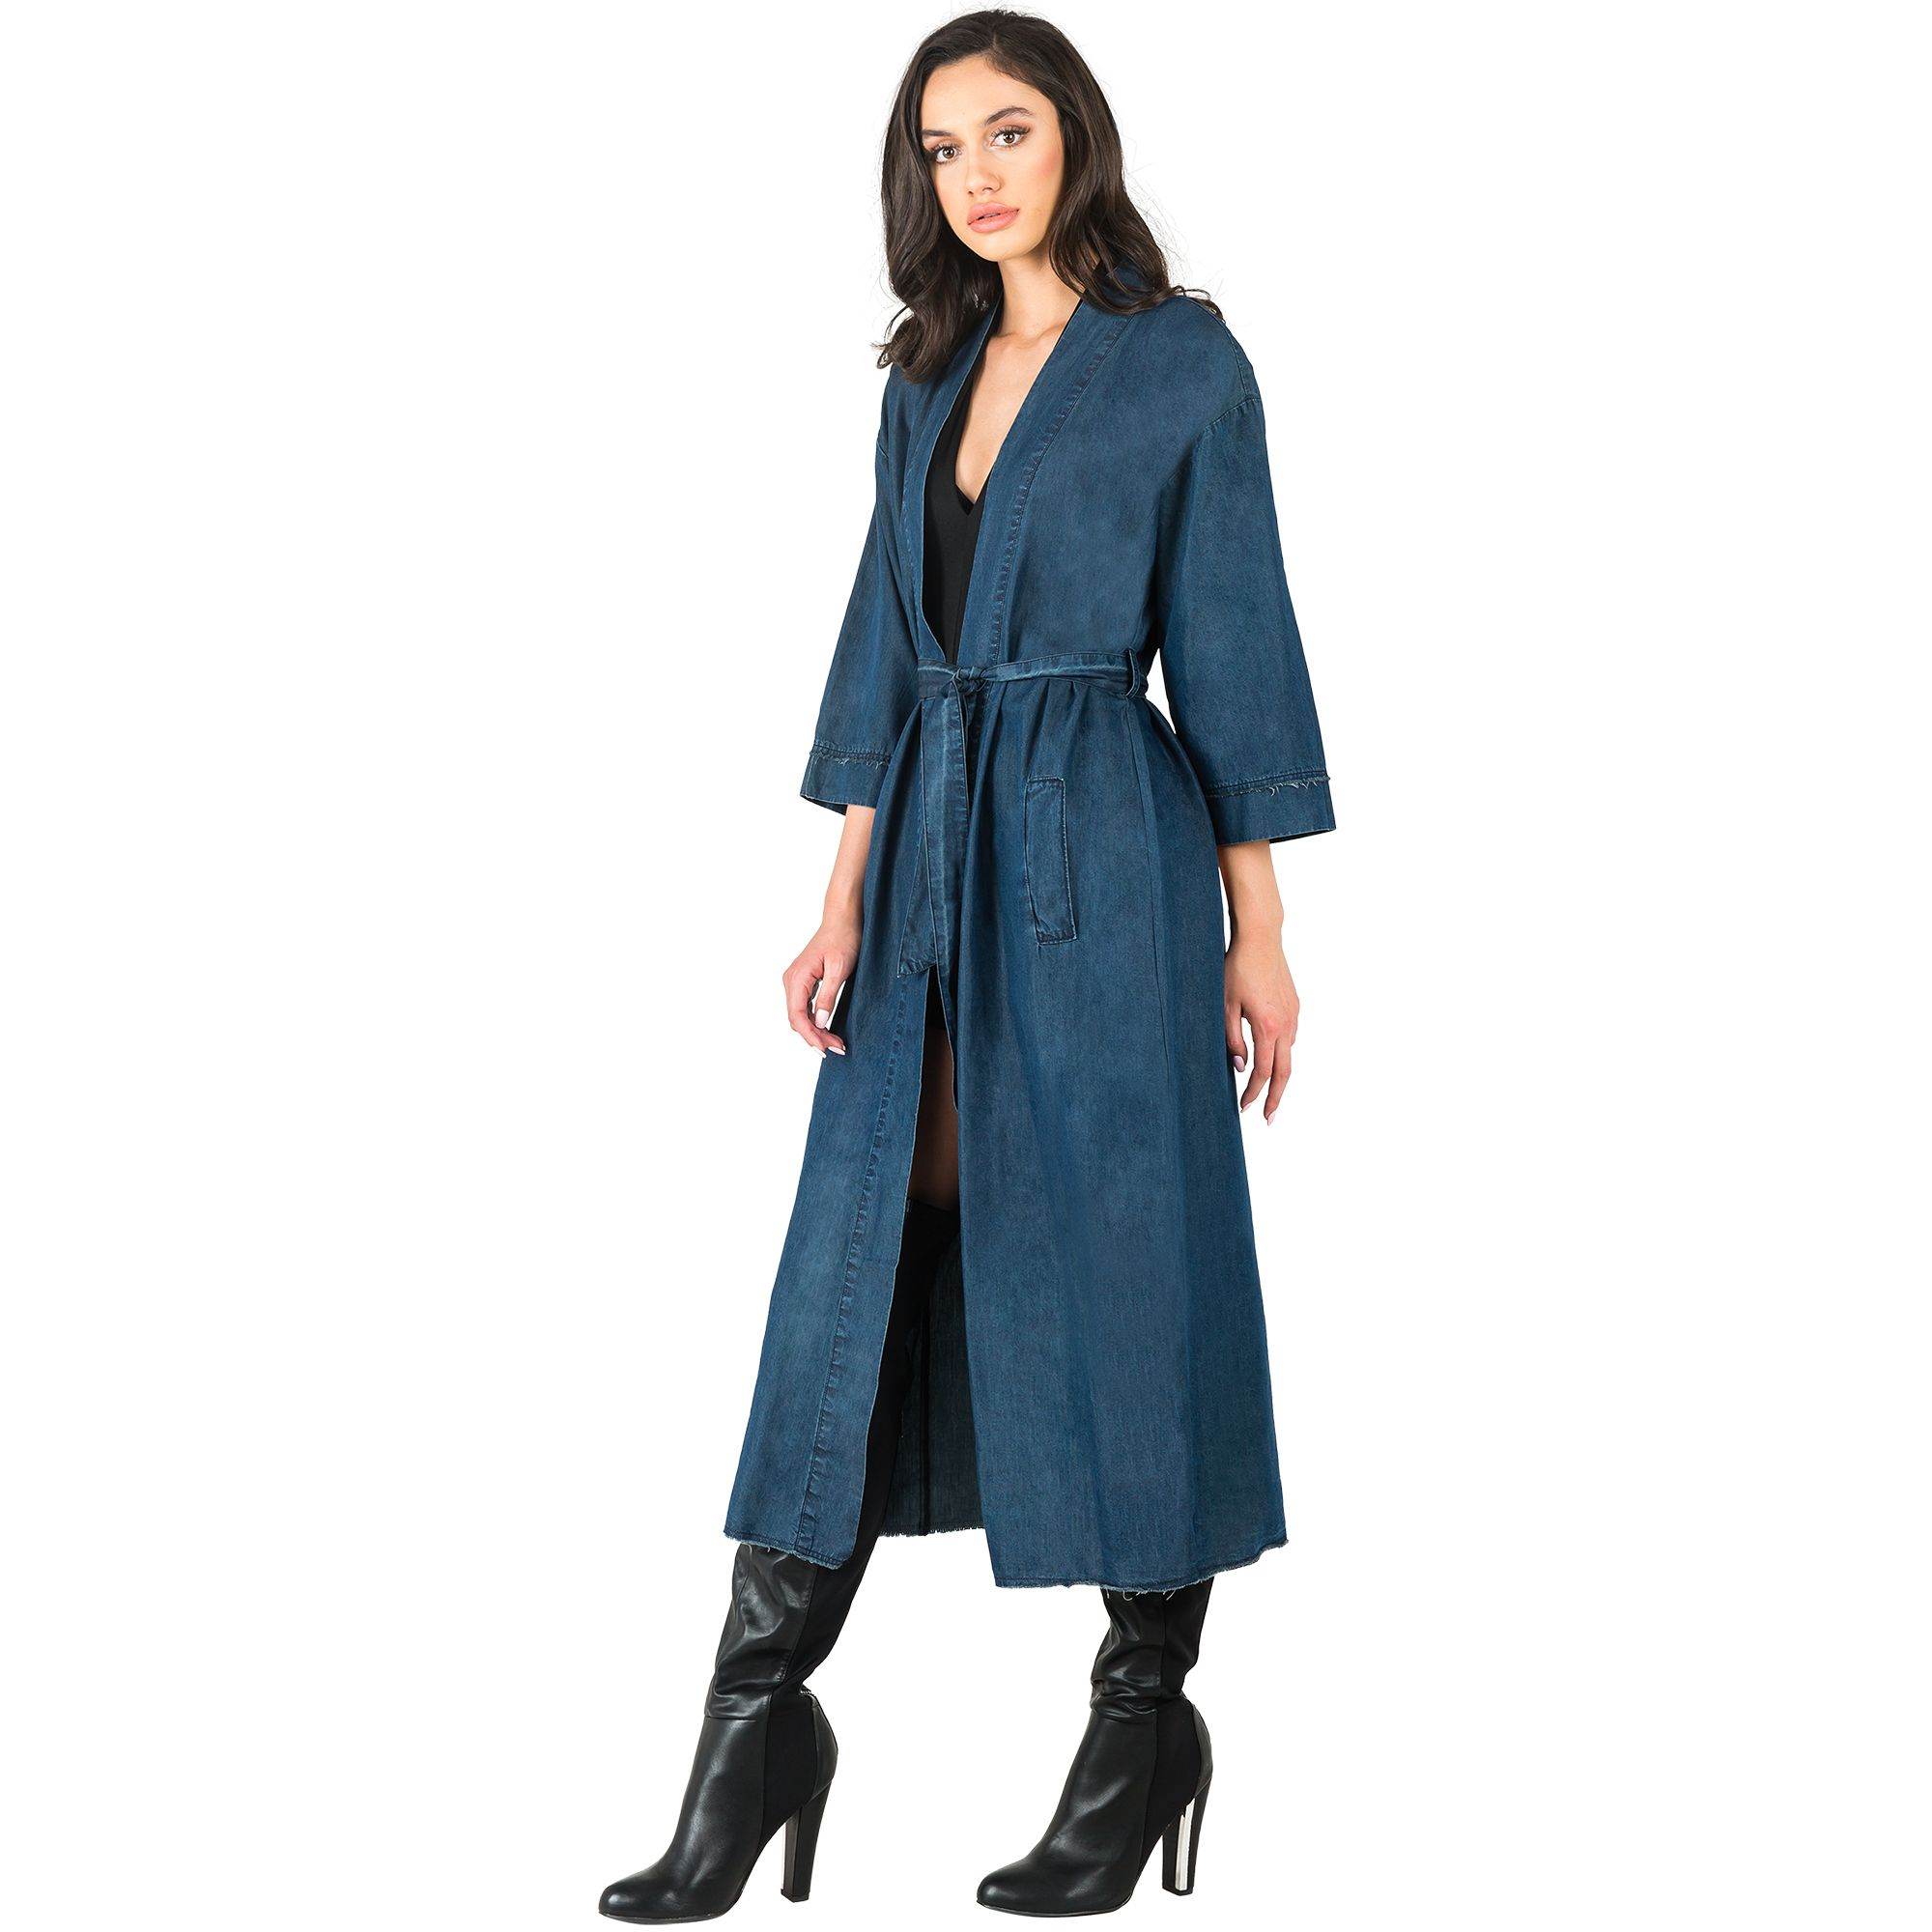 b75cdb2b023 This demin bird print duster jacket is to die for! Kimono Duster